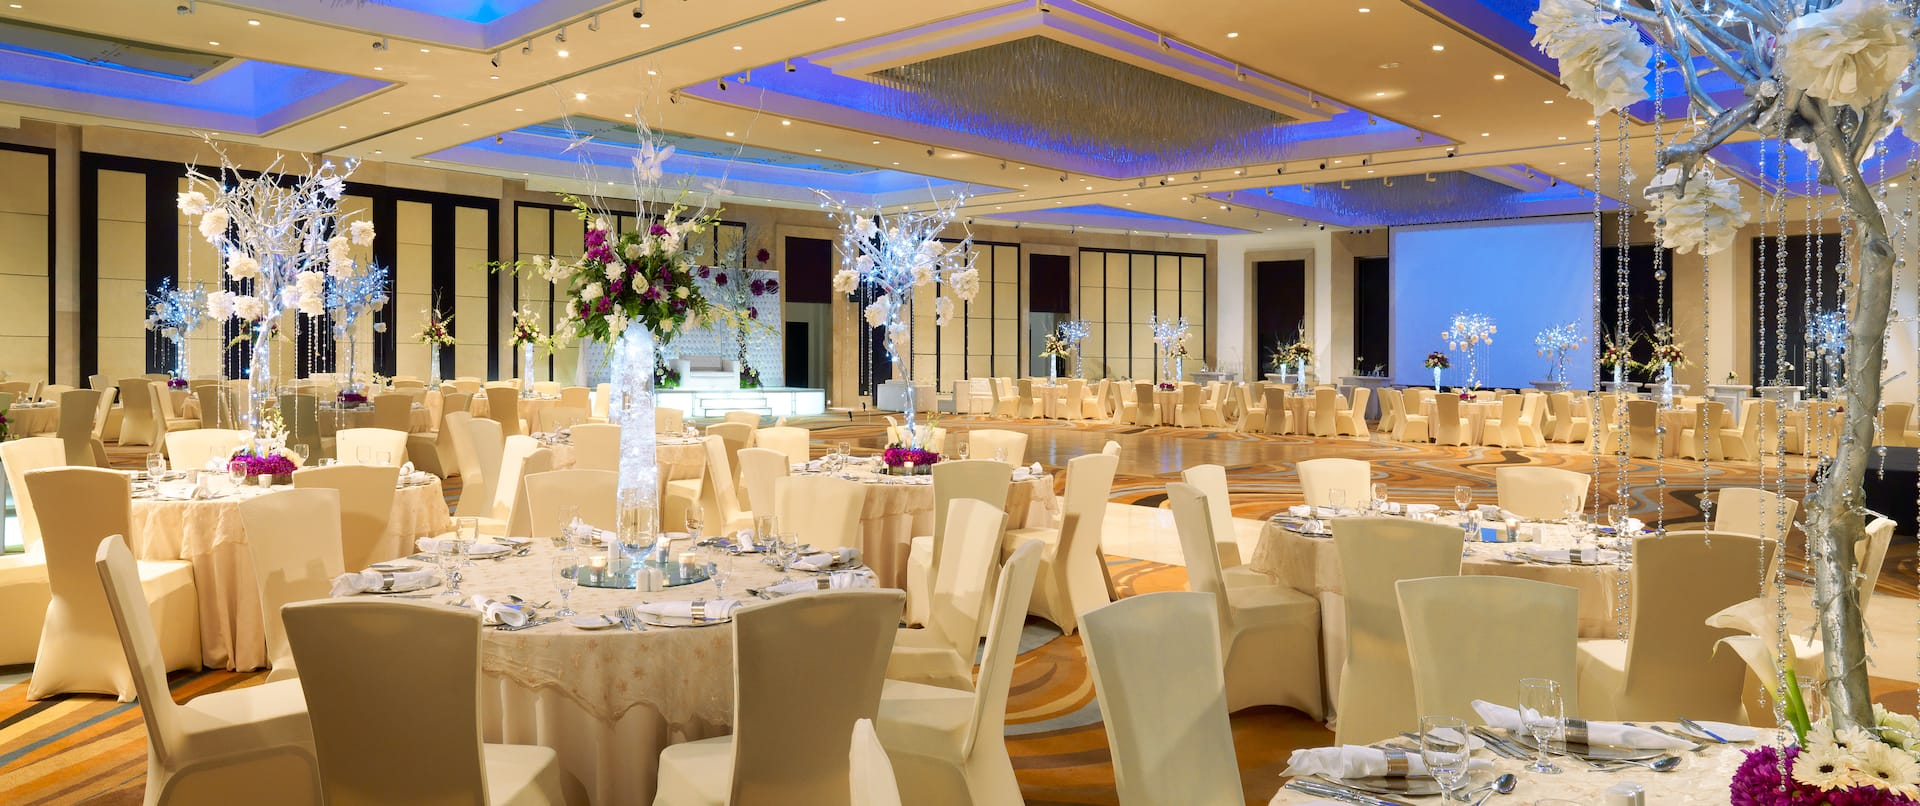 Ballroom with dining tables and chairs covered in beige cloth, full dining amenities with floral arrangements on the tables, and dance floor